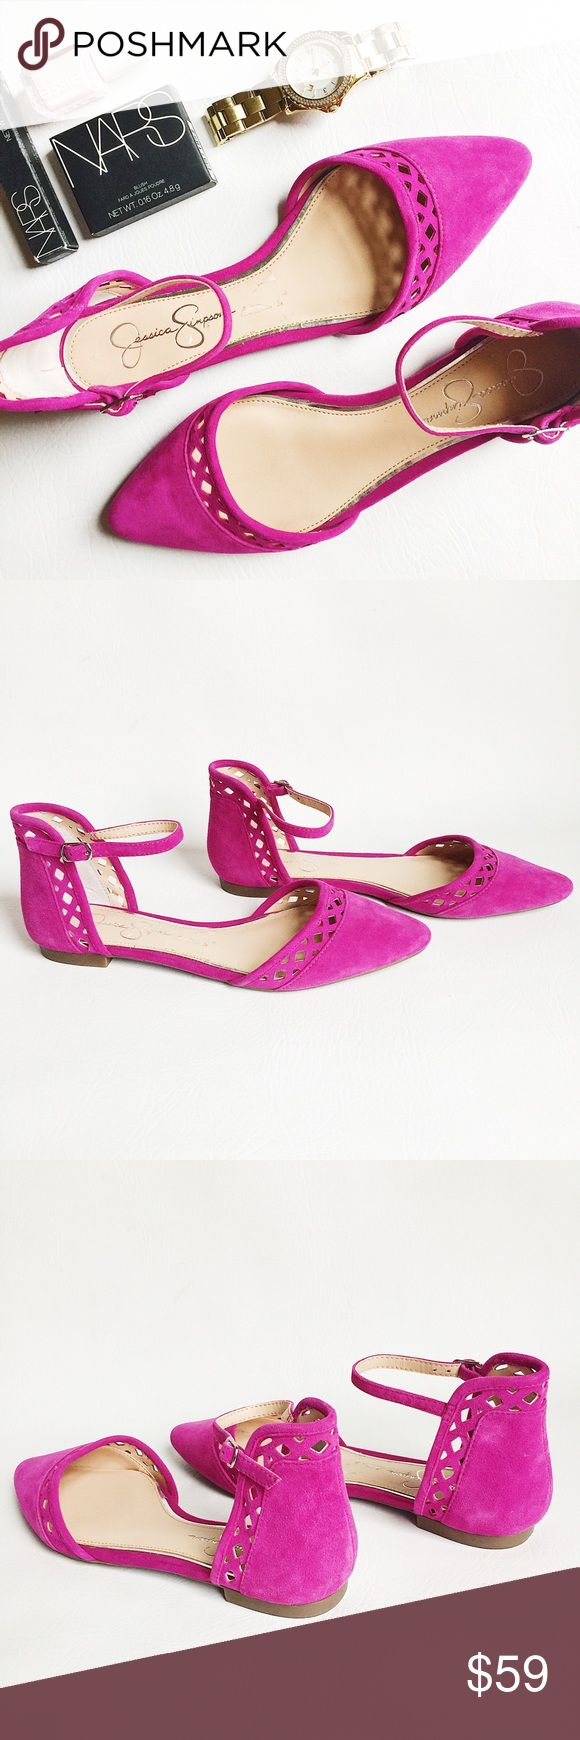 Jessica Simpson Zuka Suede D'orsay Flats Jessica Simpson Zuka Suede D'orsay Flats in fuchsia featuring cut out detail. Adjustable ankle strap and rubber soles. NWOT, never worn! Original box not included. • BUNDLE with accessories to SAVE and GET THE LOOK! • Jessica Simpson Shoes